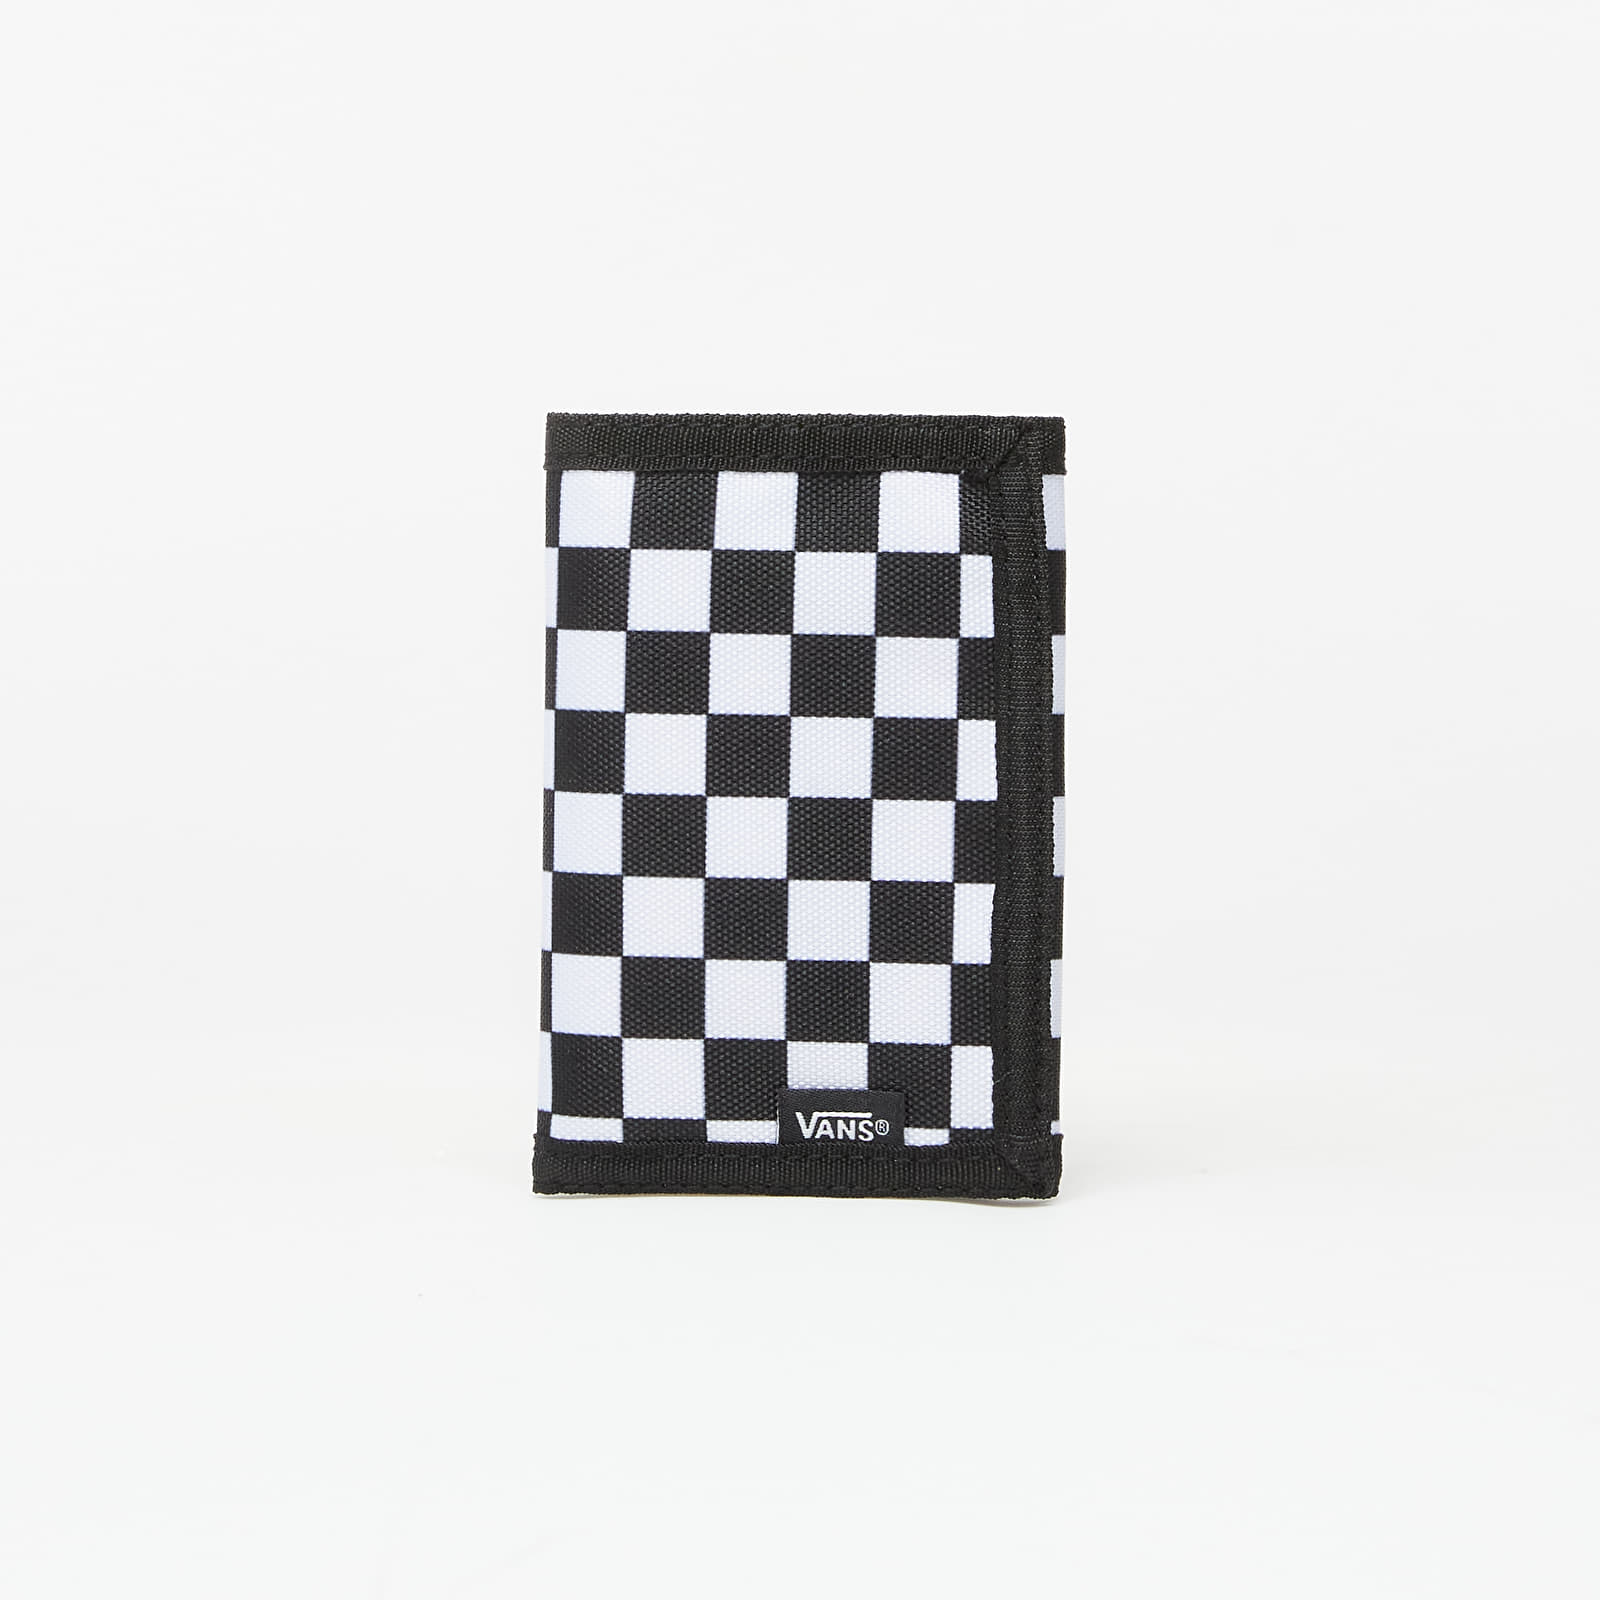 Portefeuilles Vans Slipped Wallet Black/ White Check